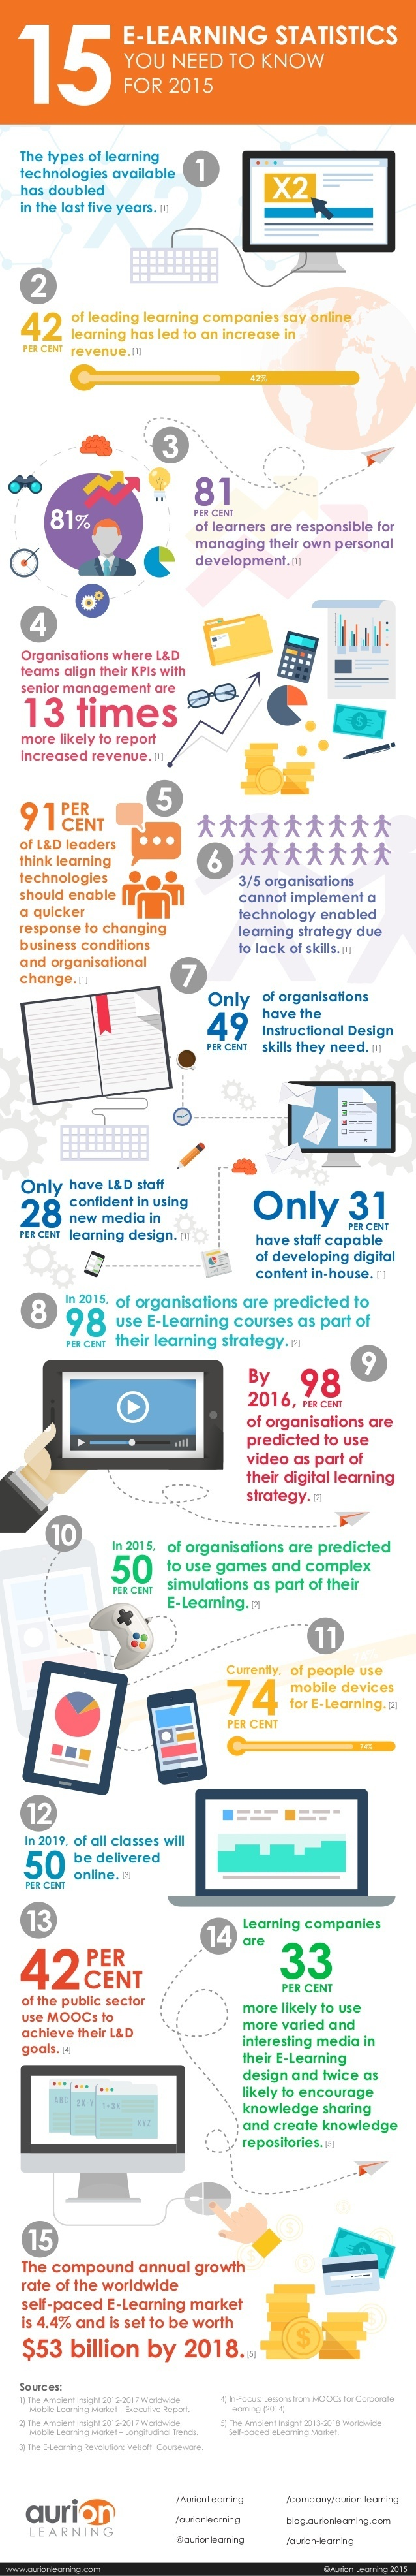 15 eLearning Statistics You Need to Know for 2015 Infographic